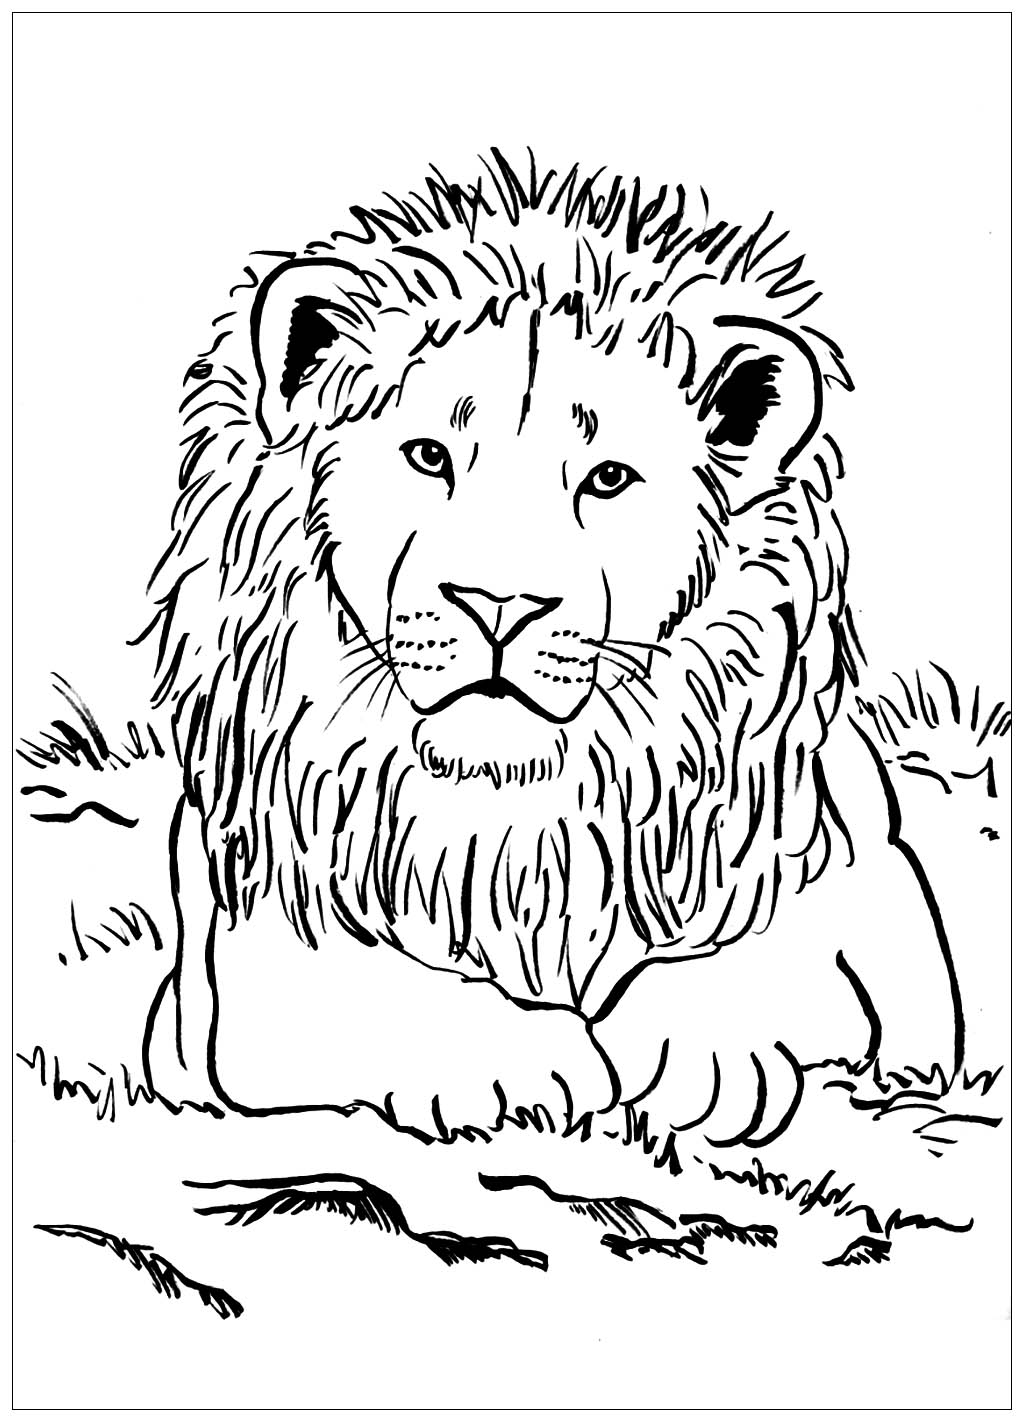 lion coloring sheets lion coloring pages clipart and other free printable lion coloring sheets